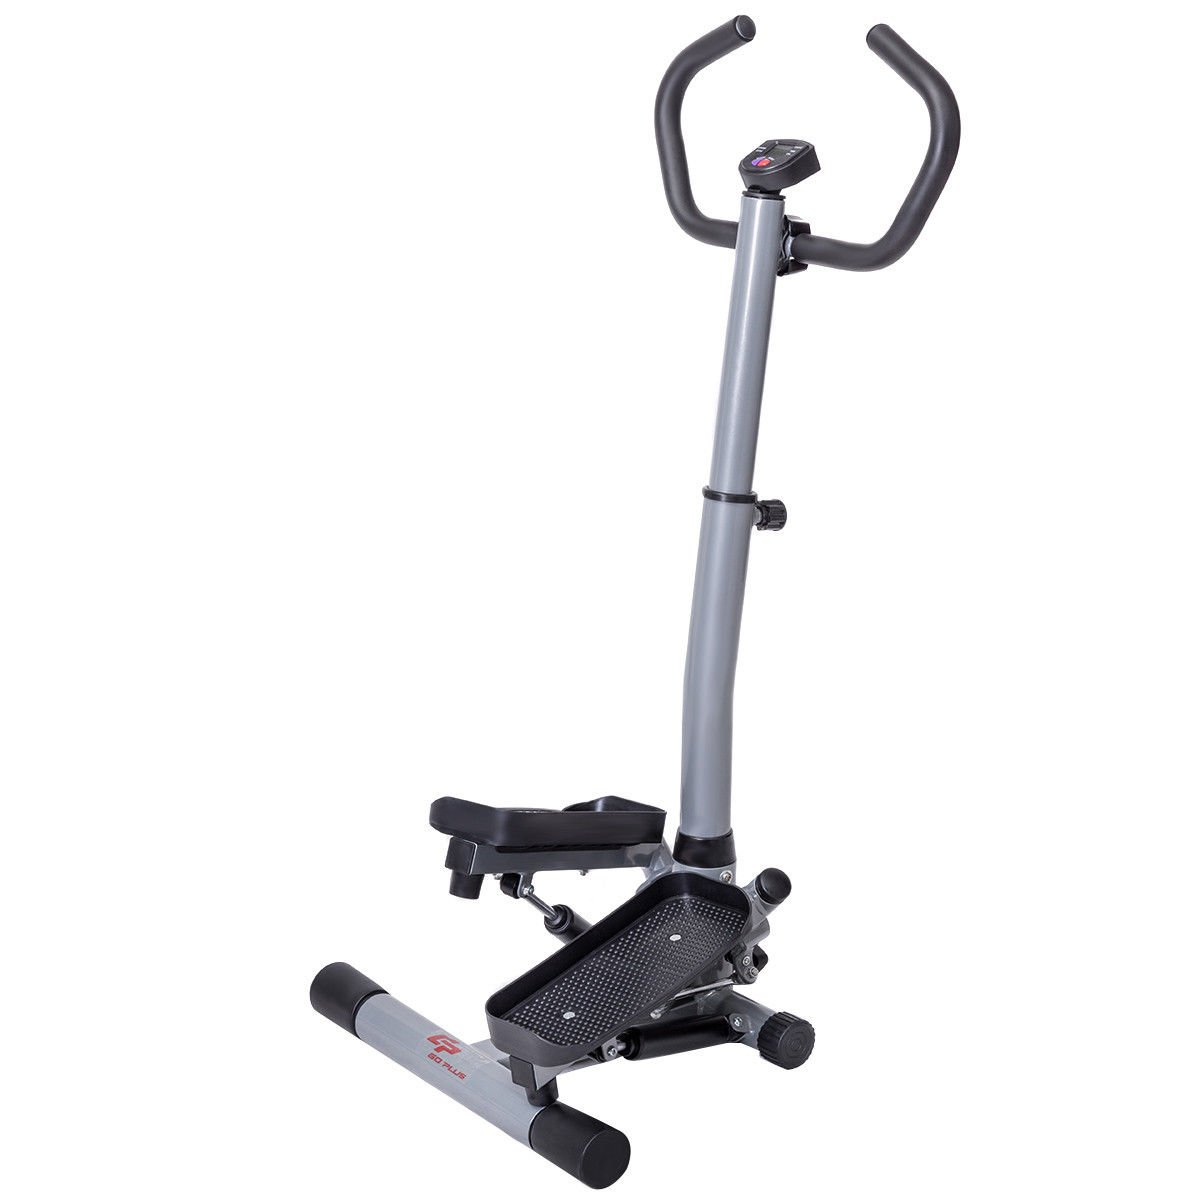 Goplus Stair Stepper Twister 2 in 1 Step Machine Fitness Exercise Workout with Handle Bar and LCD Display Cardio Trainer Stair Climber by Goplus (Image #7)